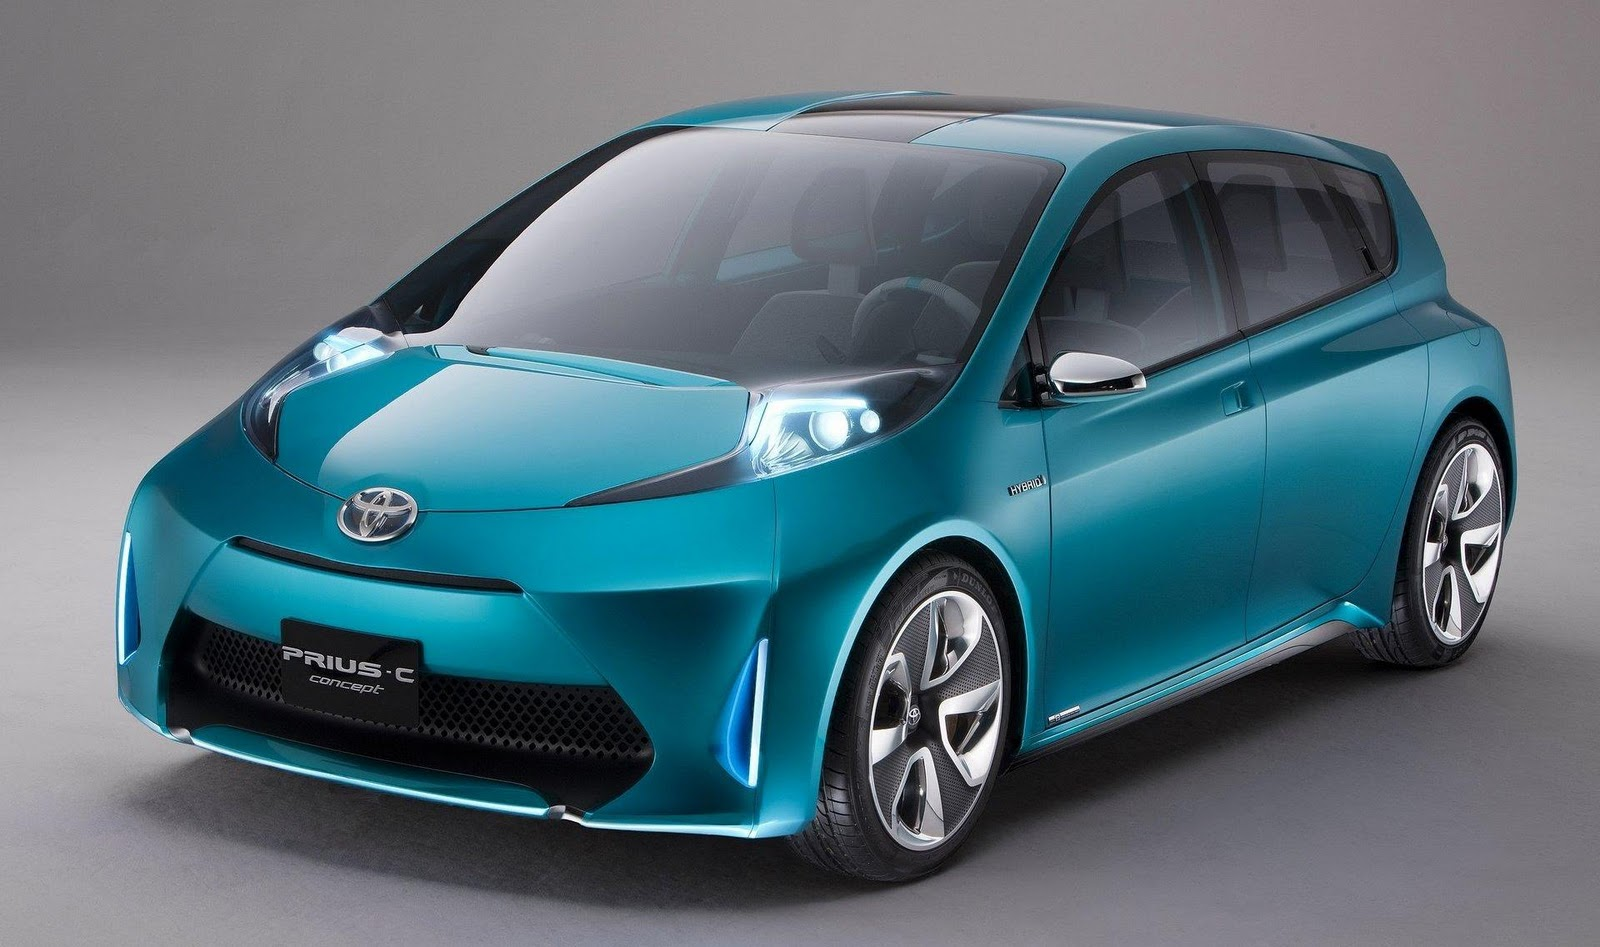 Forthcoming Toyota Prius C Aqua Sub Compact Hybrid To Exceed 70mpg